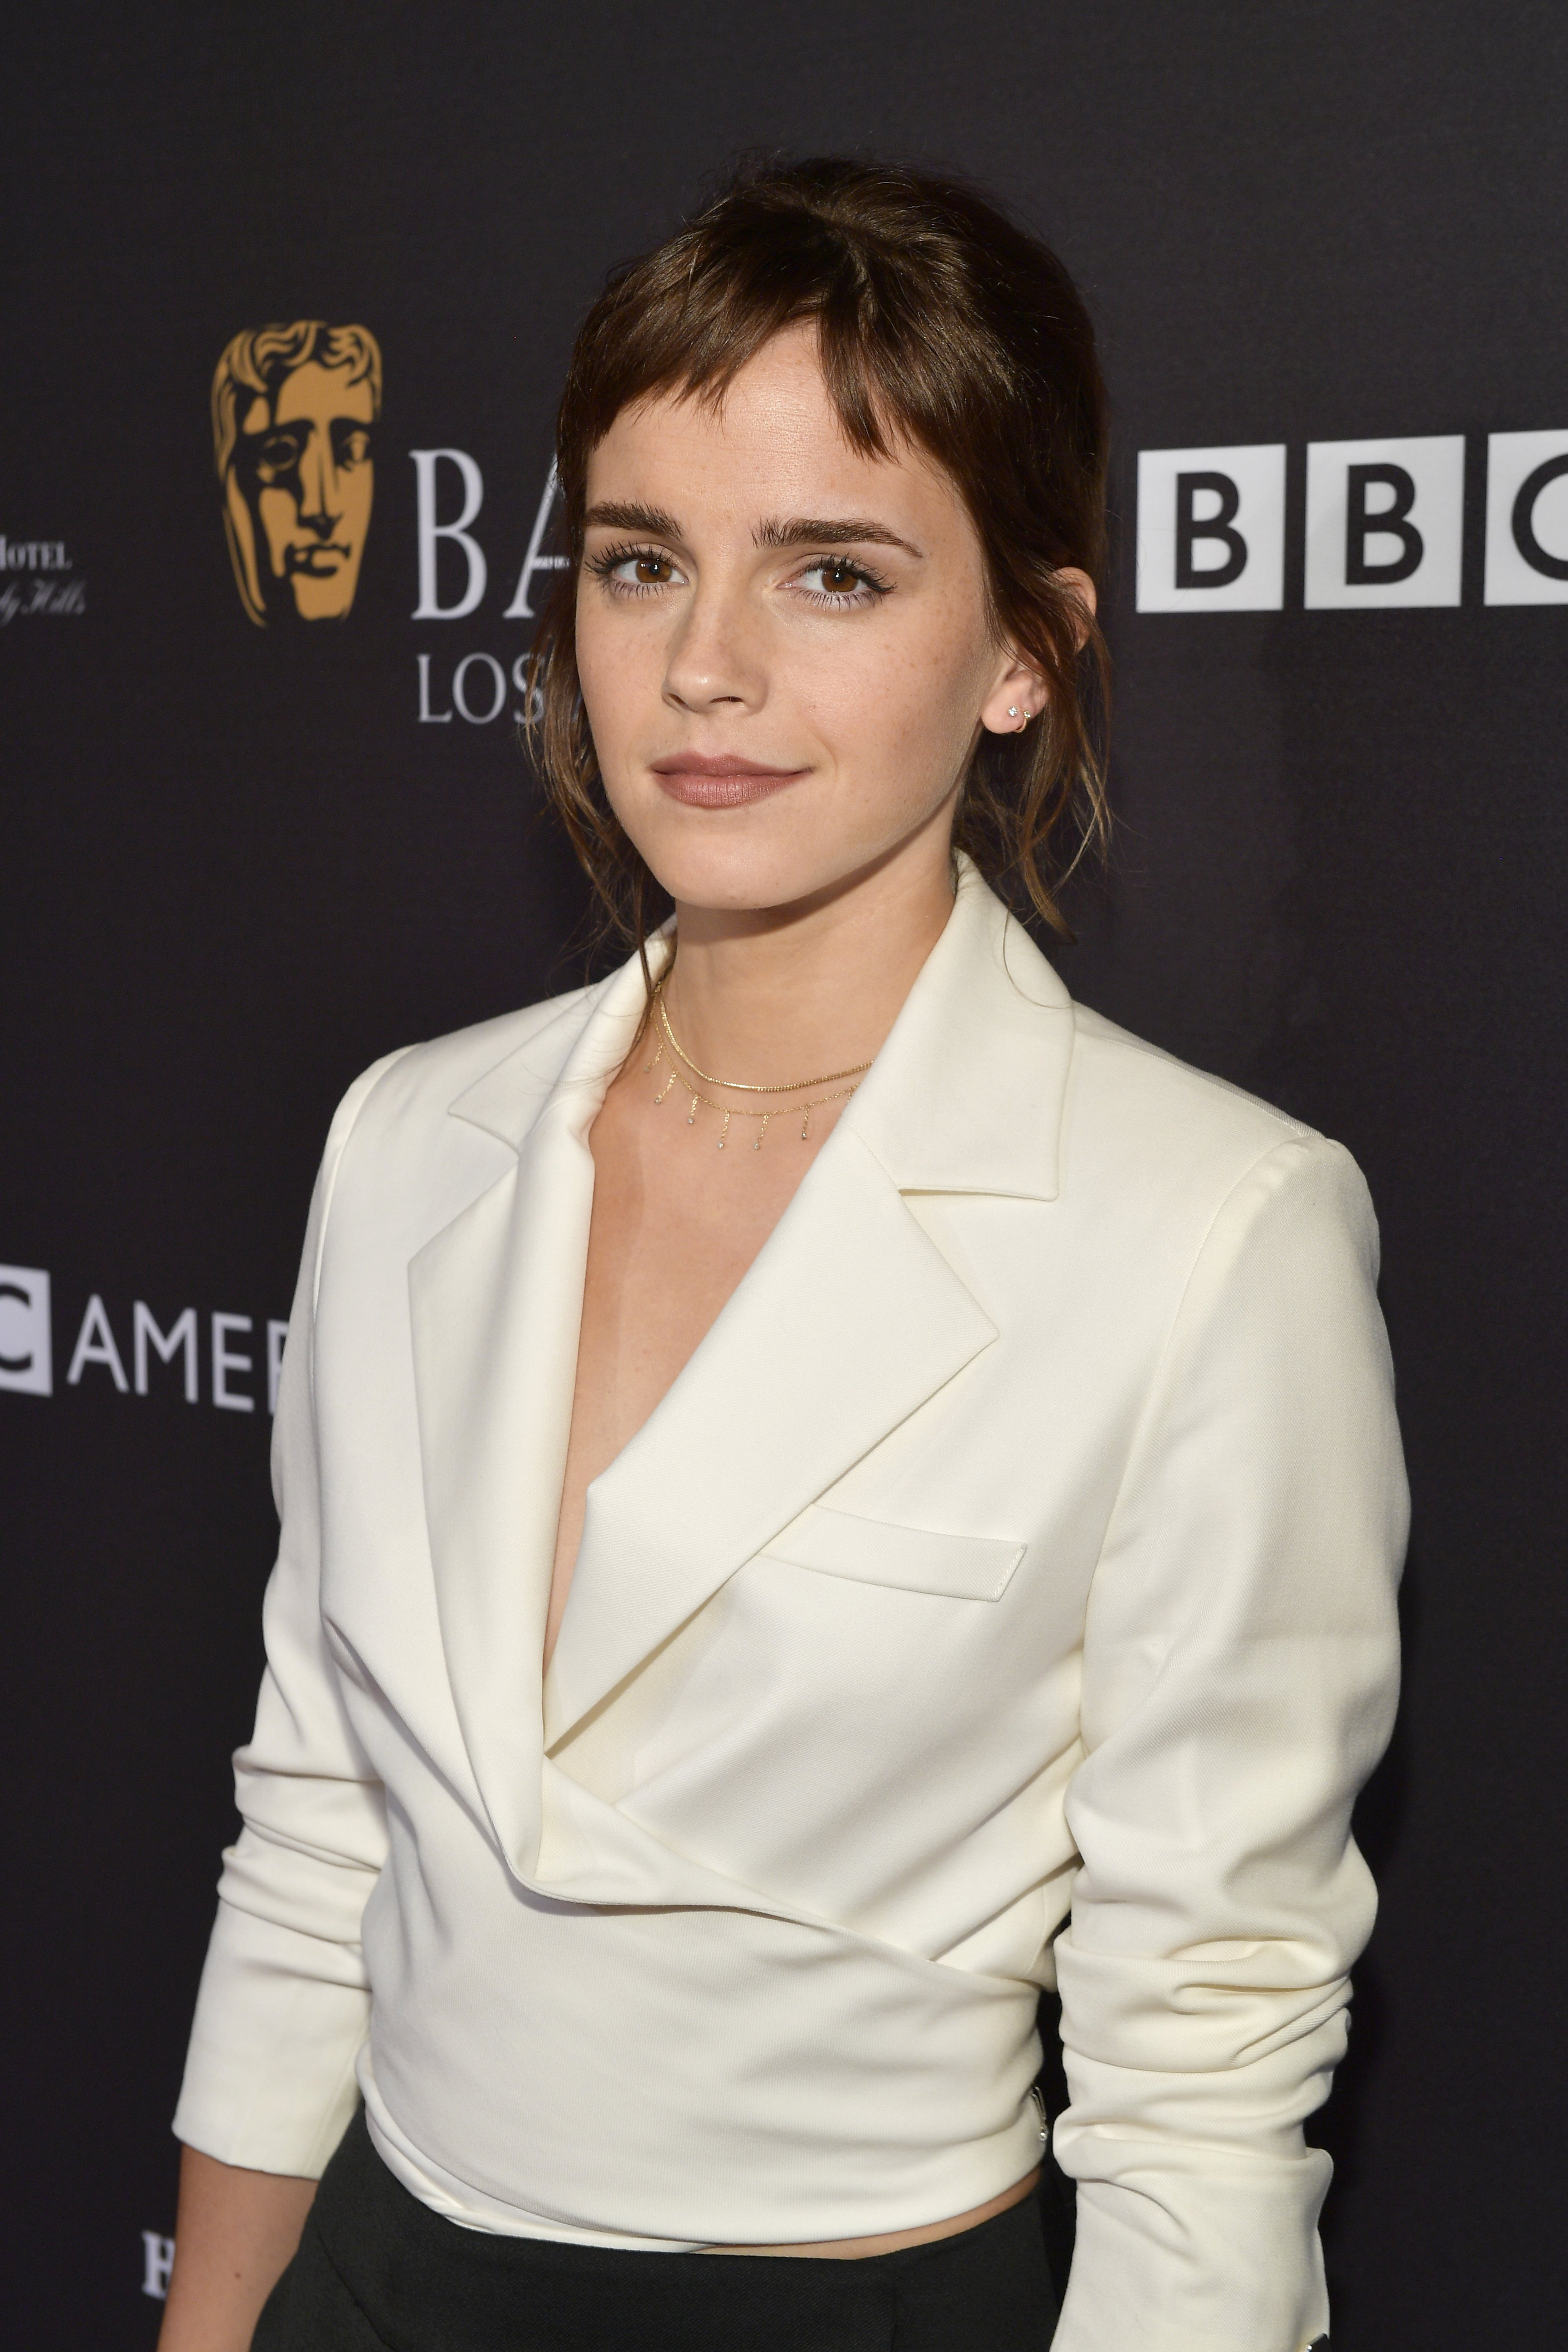 Image Source: Getty Images/Emma at a BBC event